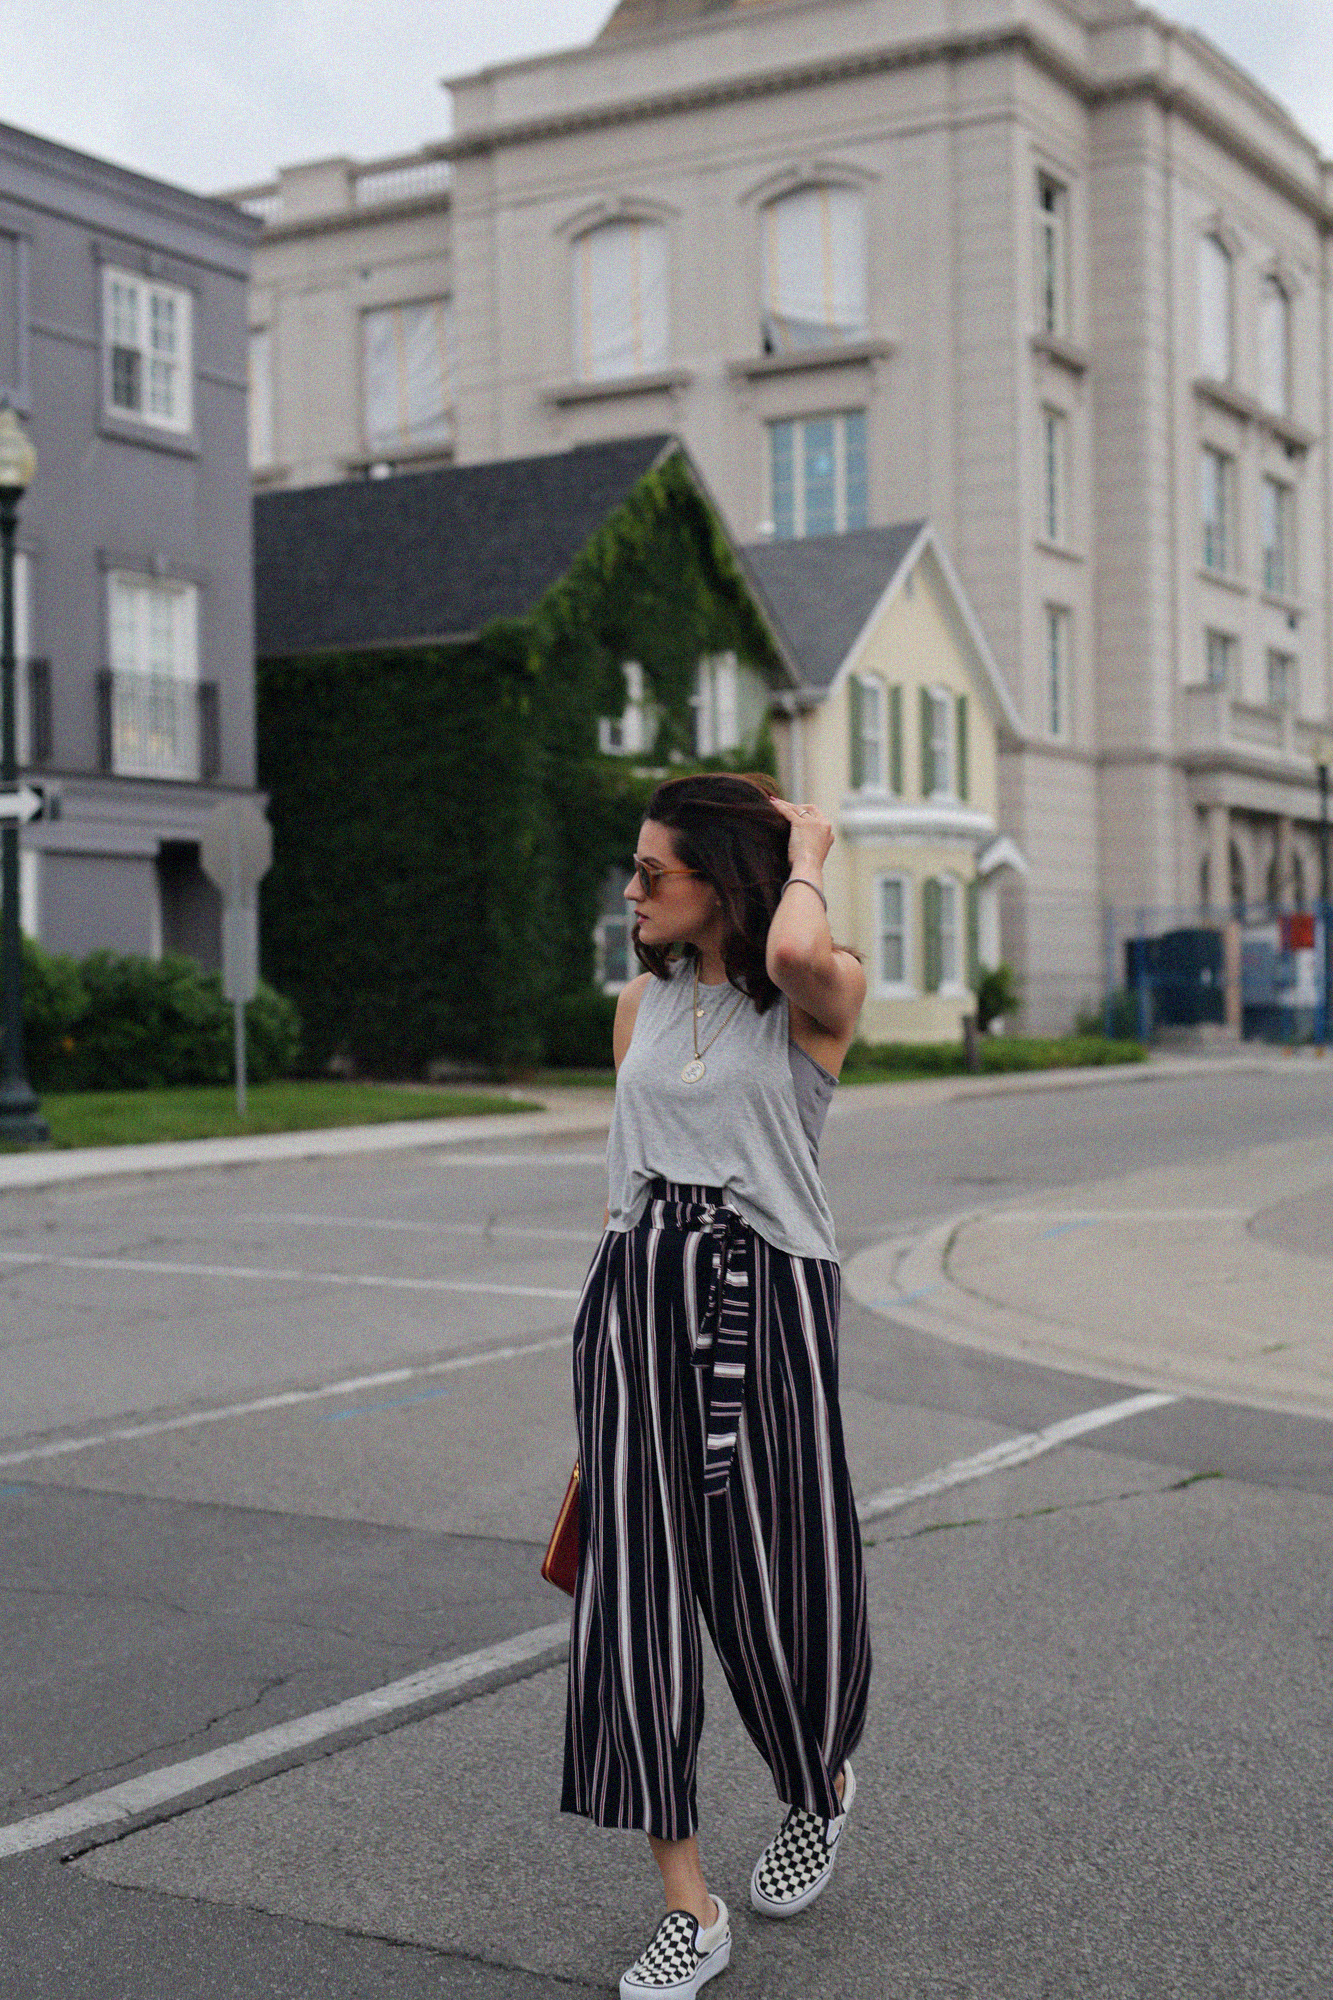 red balenciaga clutch, document holder, checkered vans and striped pants - street style_2029.jpg